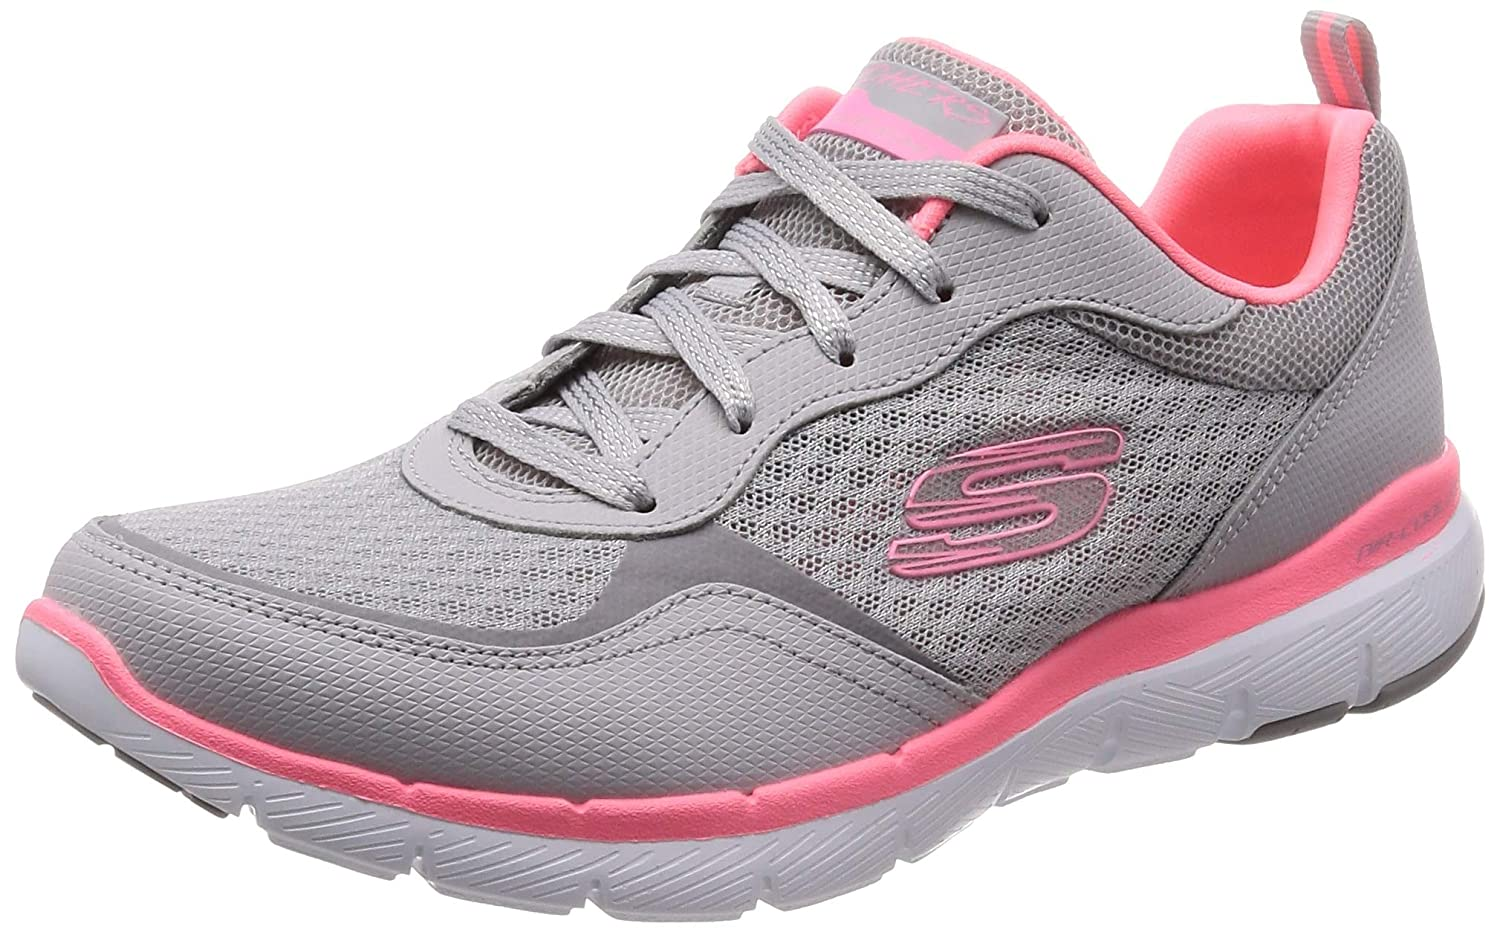 Skechers Damen Flex Appeal 3.0 go Forward Sneaker, Grau, 38